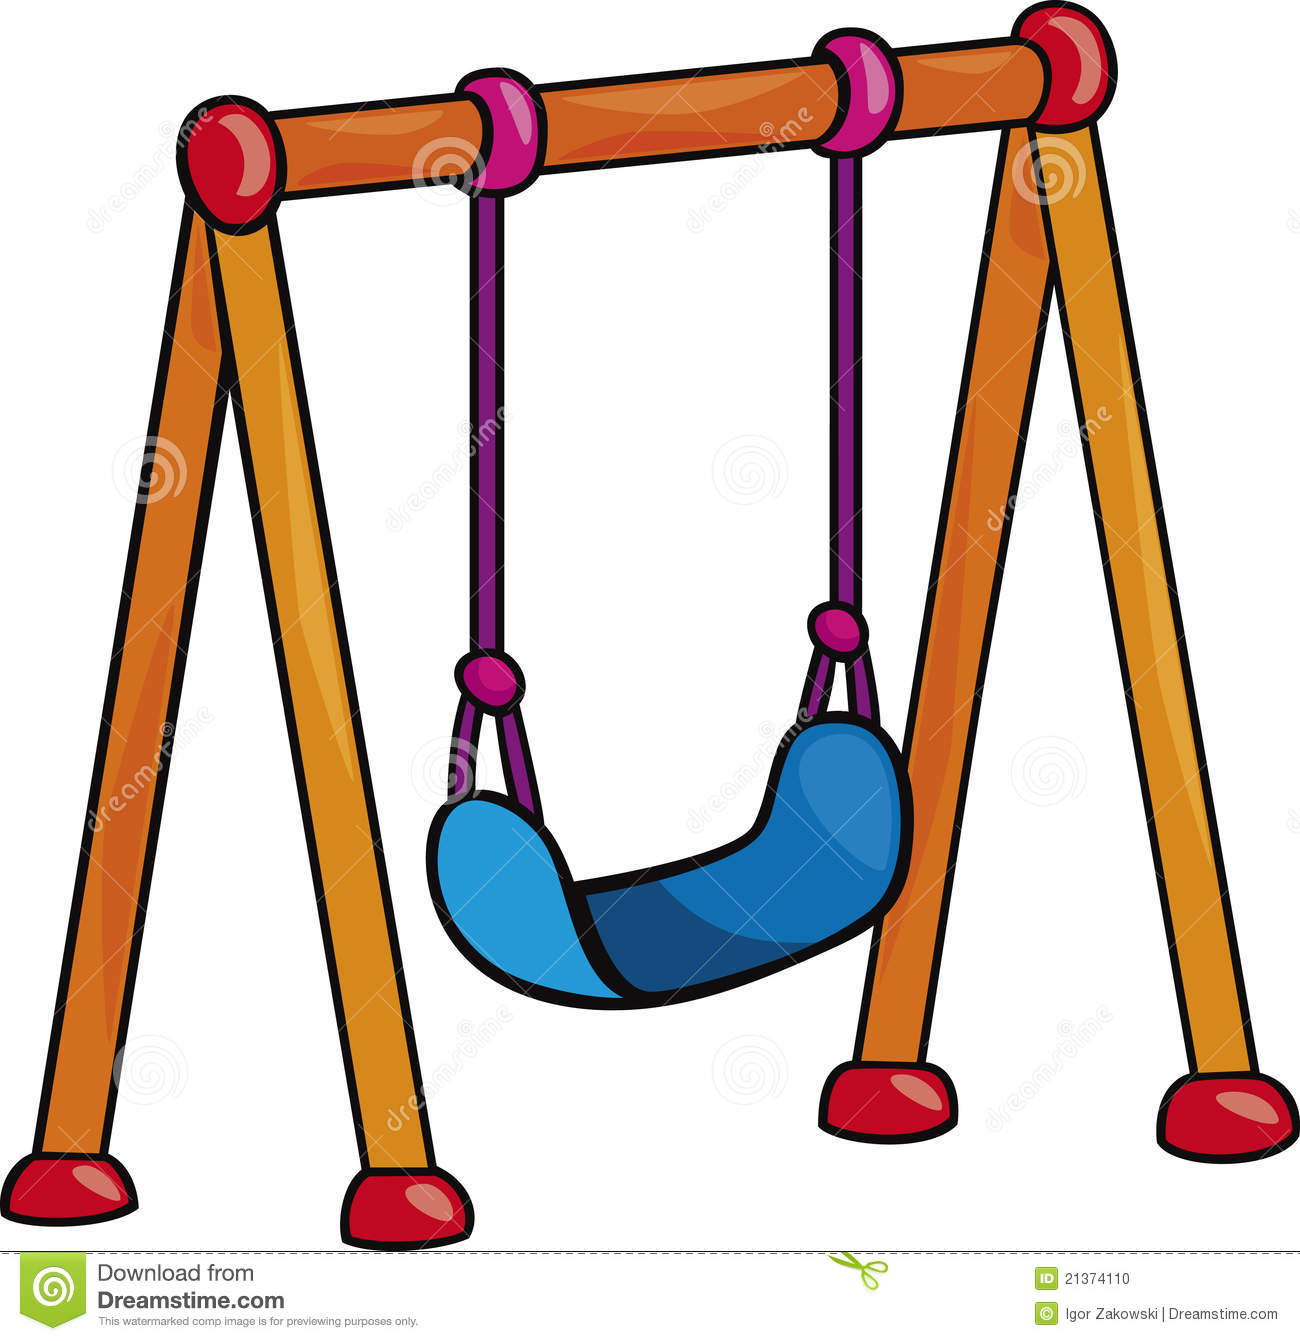 Clipart swing set graphic royalty free library Swing set clipart 2 » Clipart Station graphic royalty free library